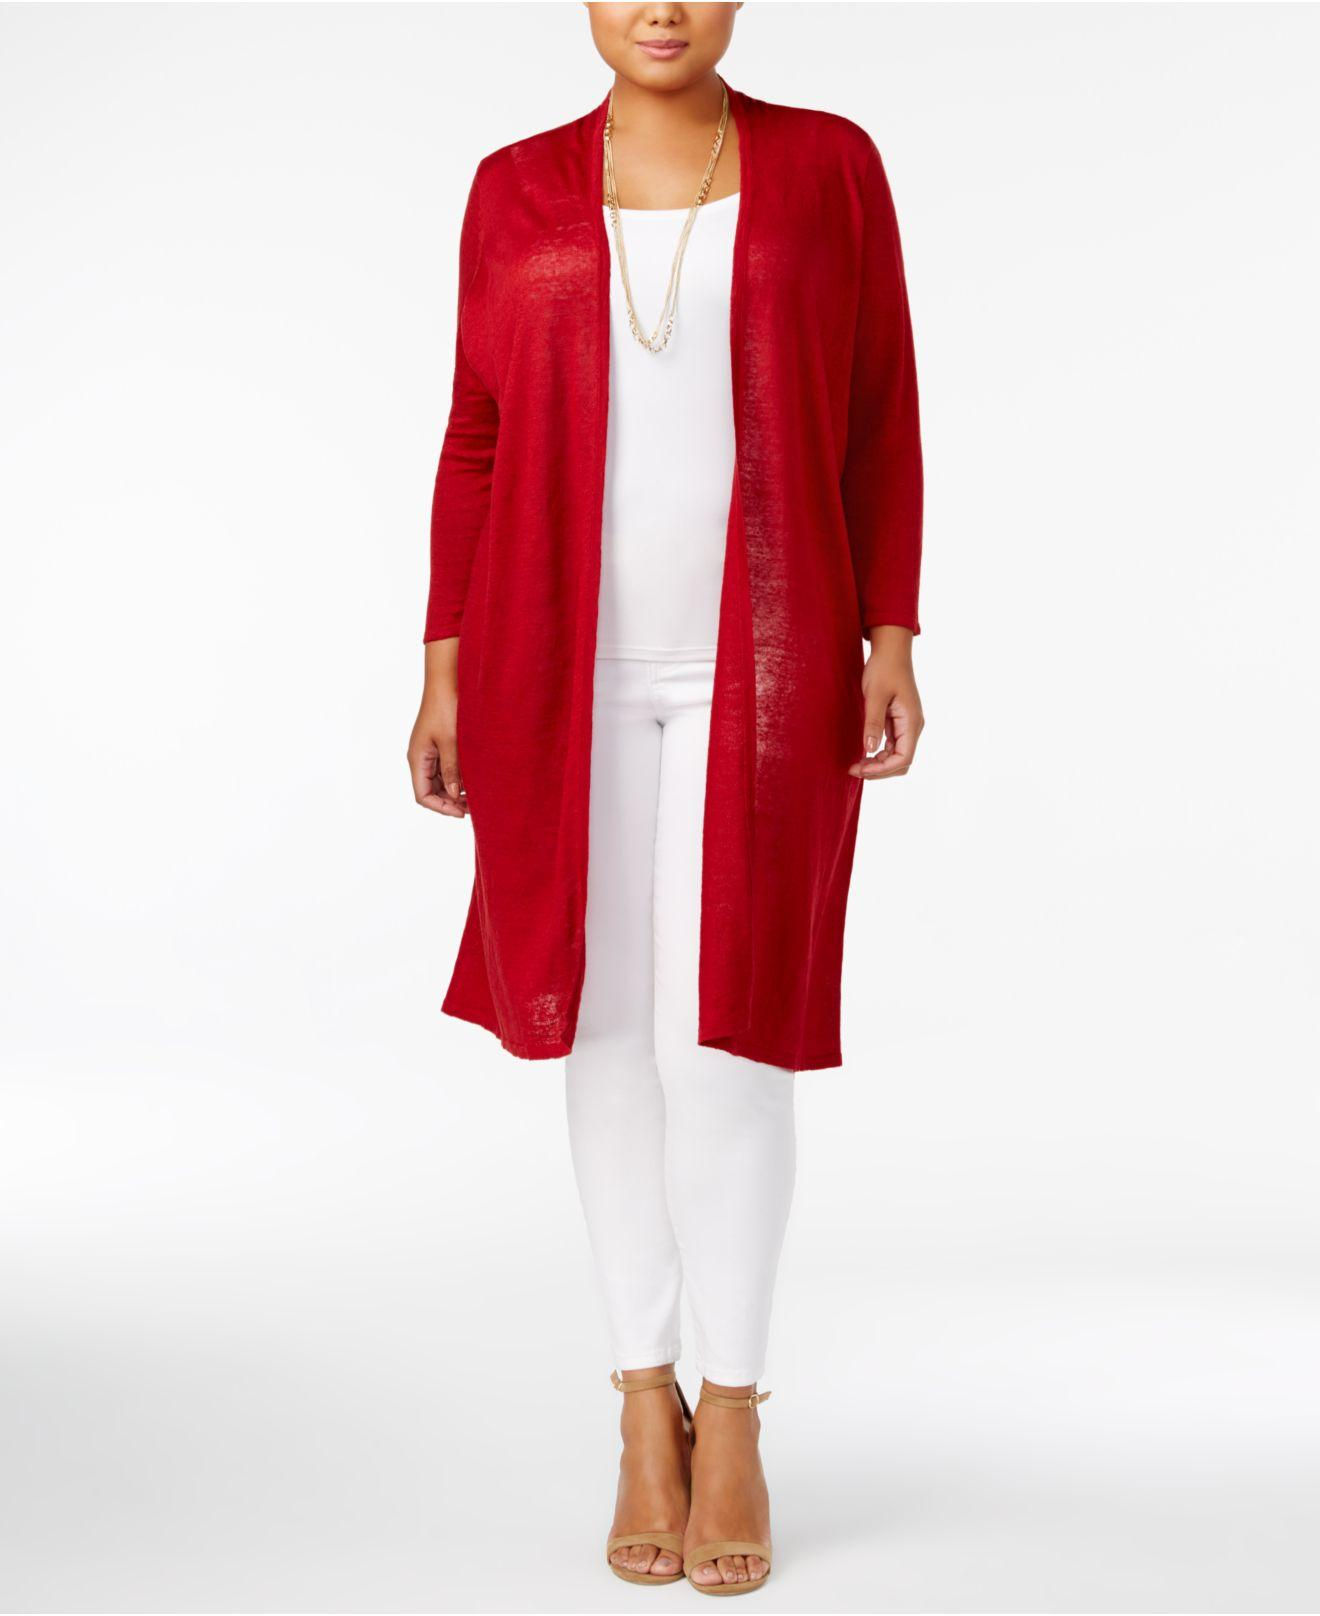 Alfani Plus Size Linen Duster Cardigan in Red | Lyst